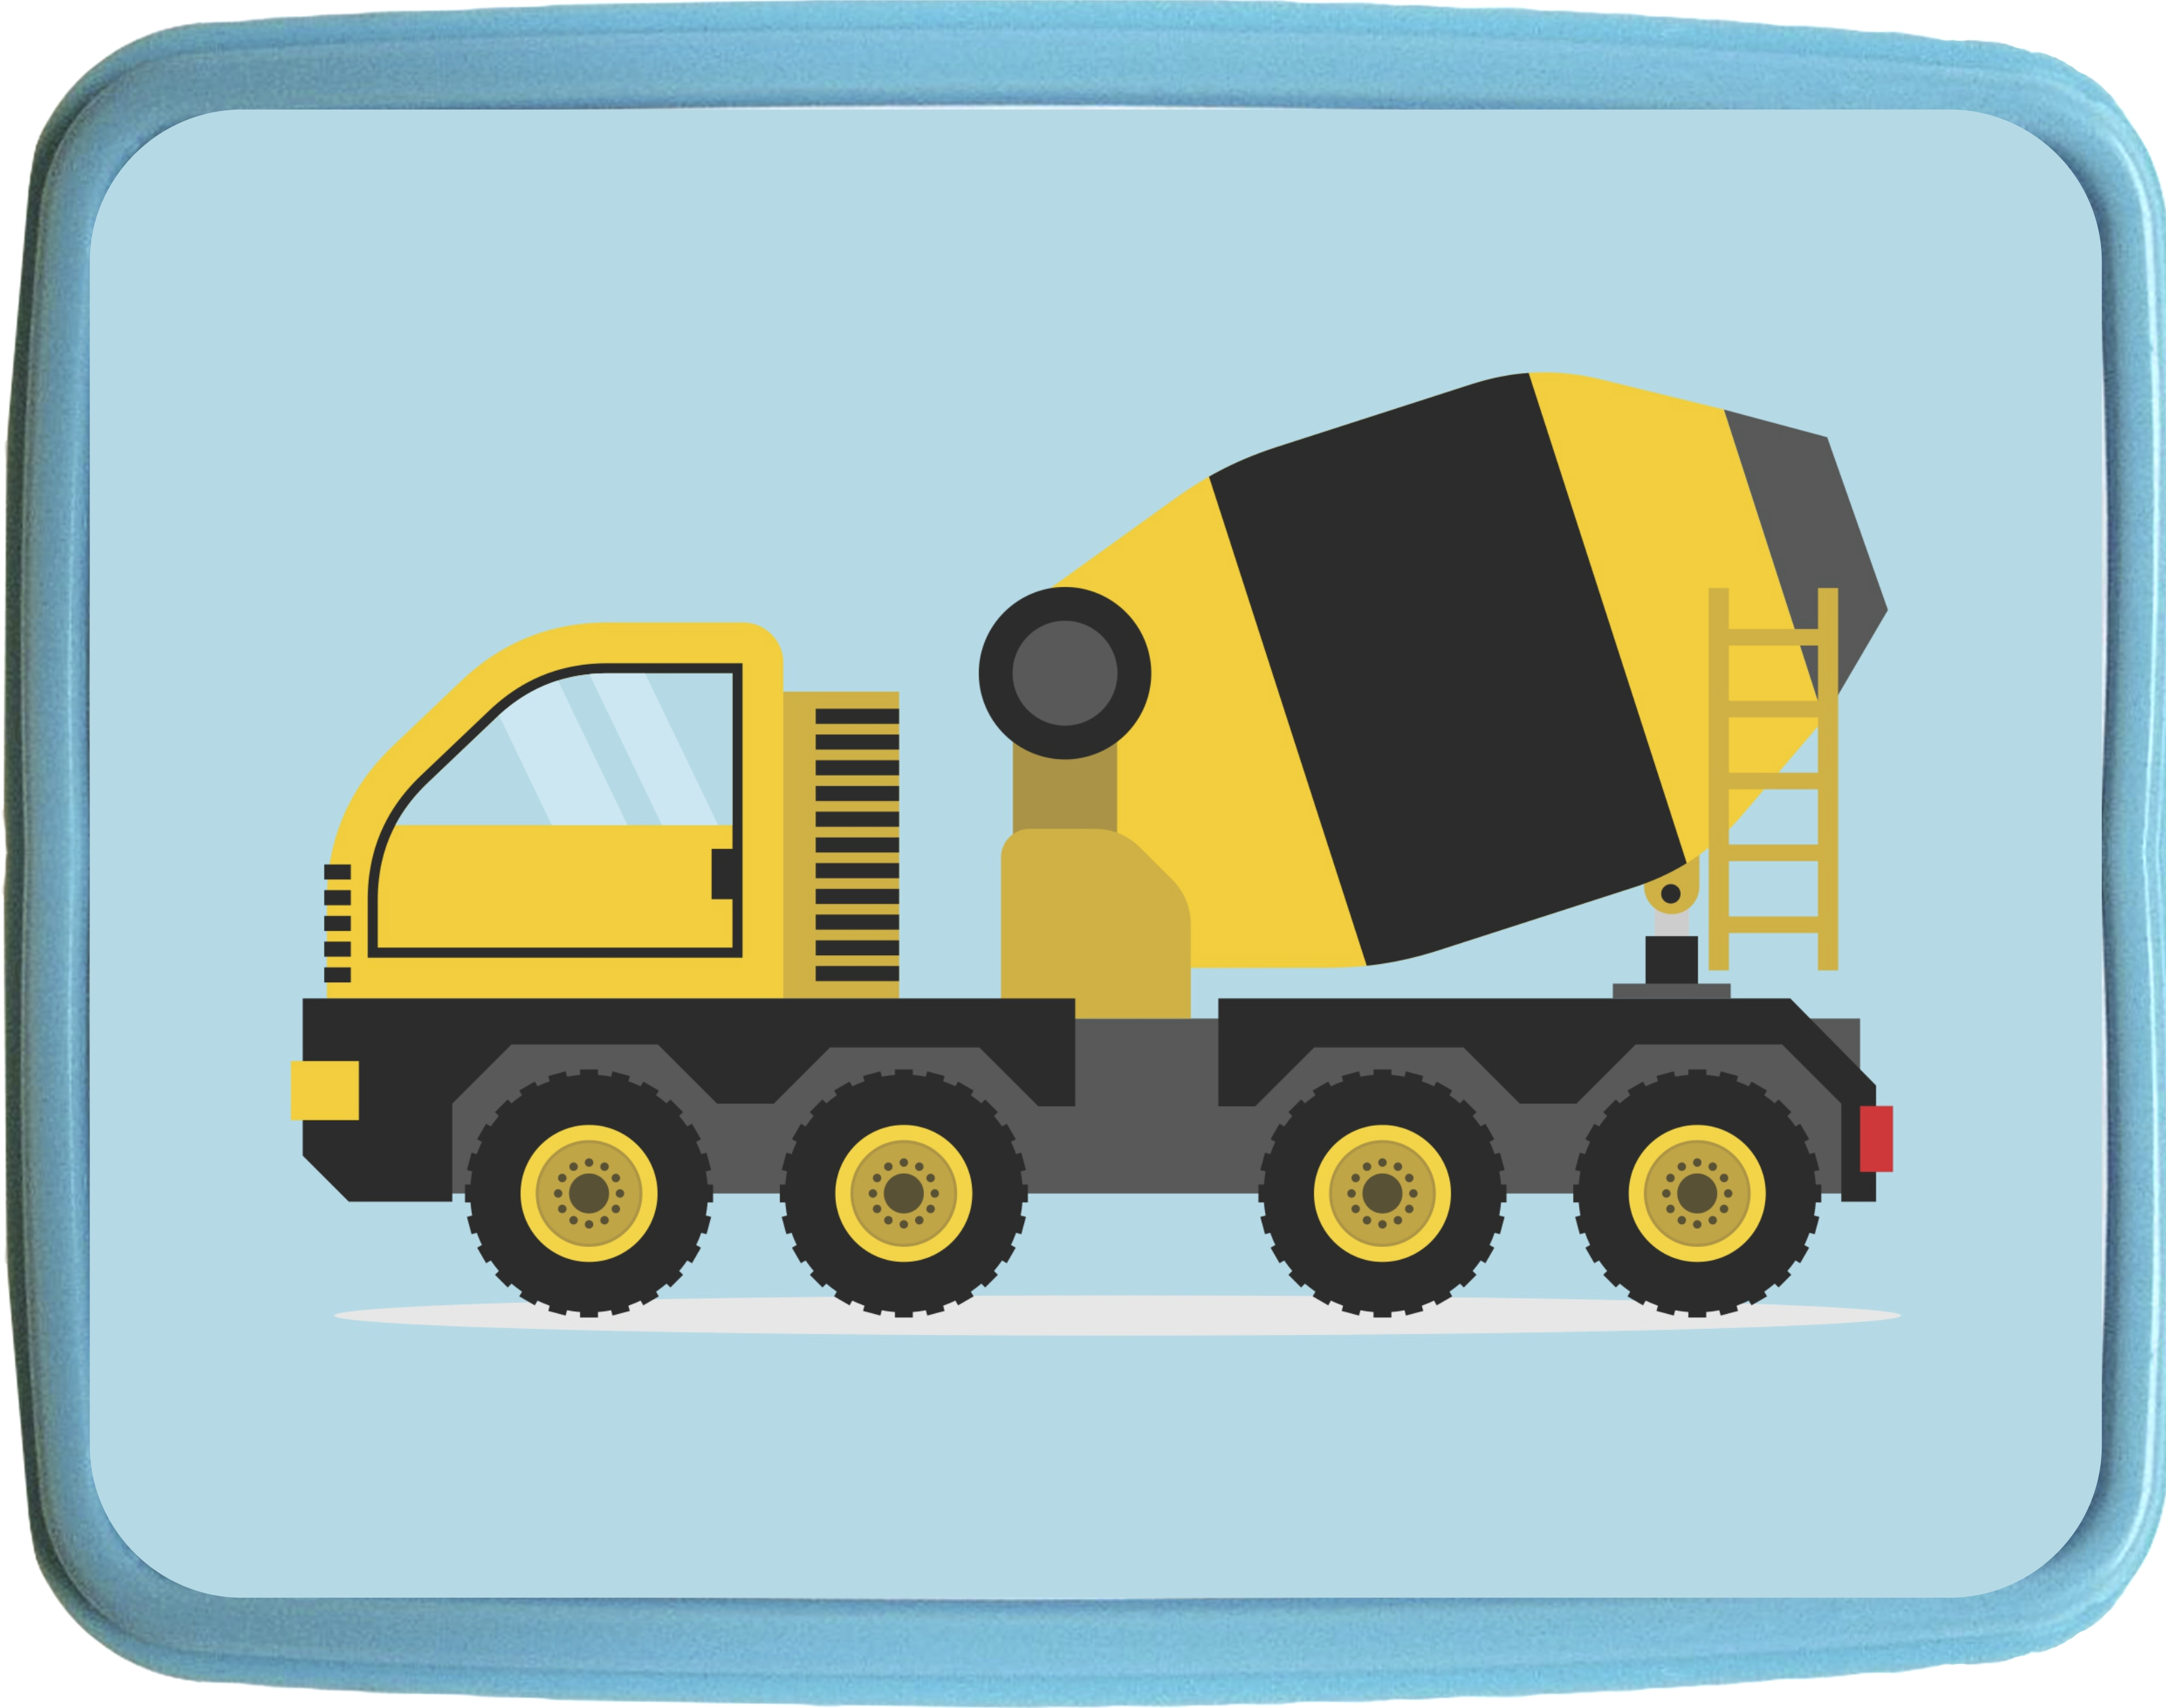 "Cement Mixer Truck Boys 7"" x 9"" Blue Plastic Reusable Children's Lunch Box by Accessory Avenue"